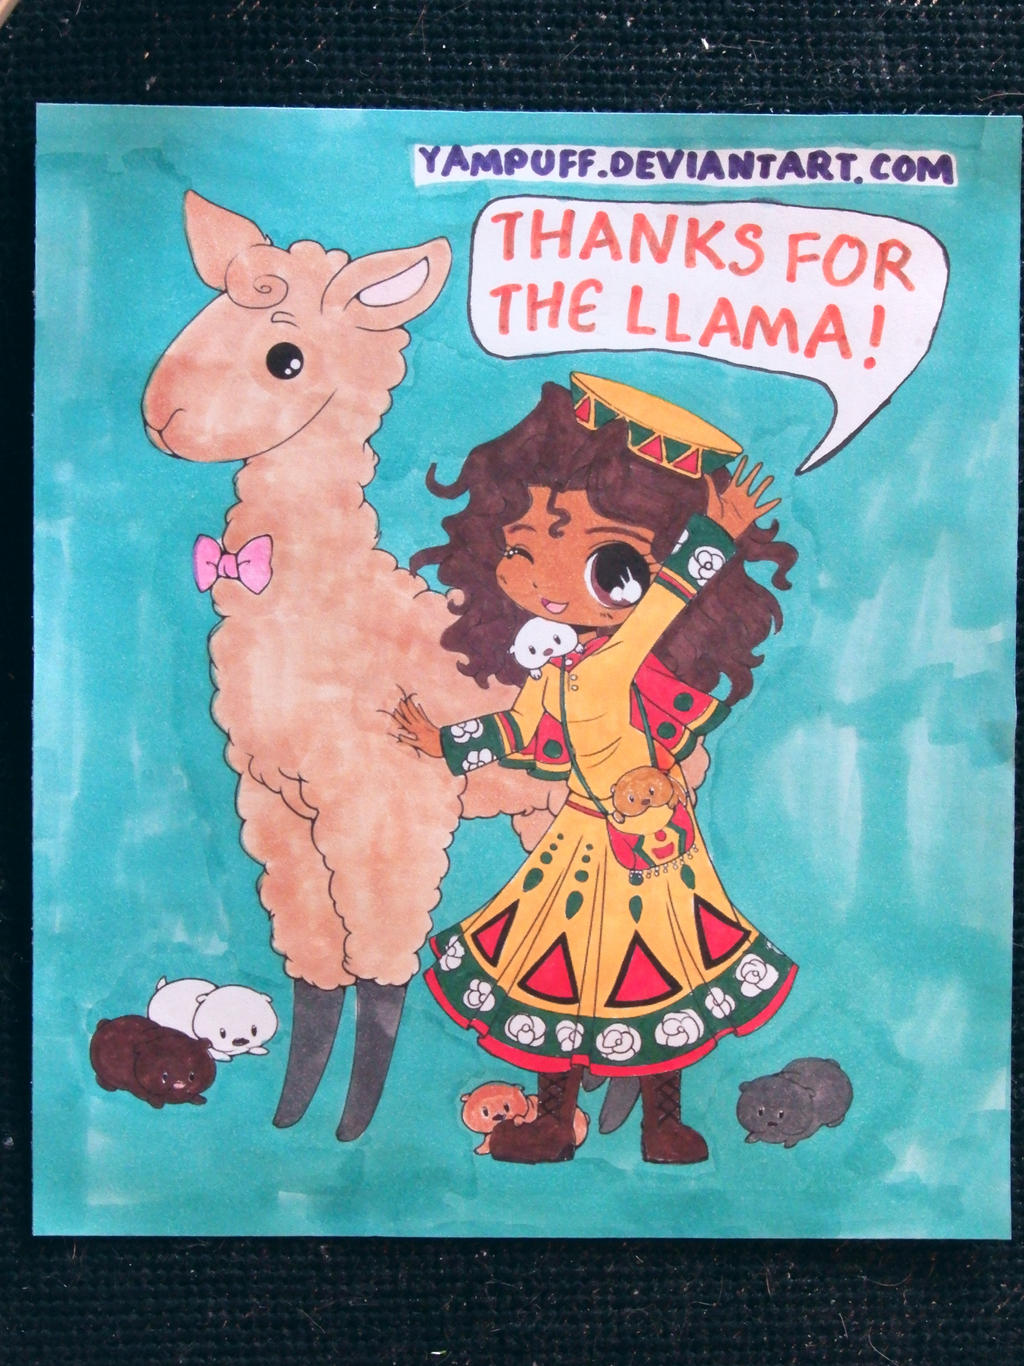 Thanks for the llama!